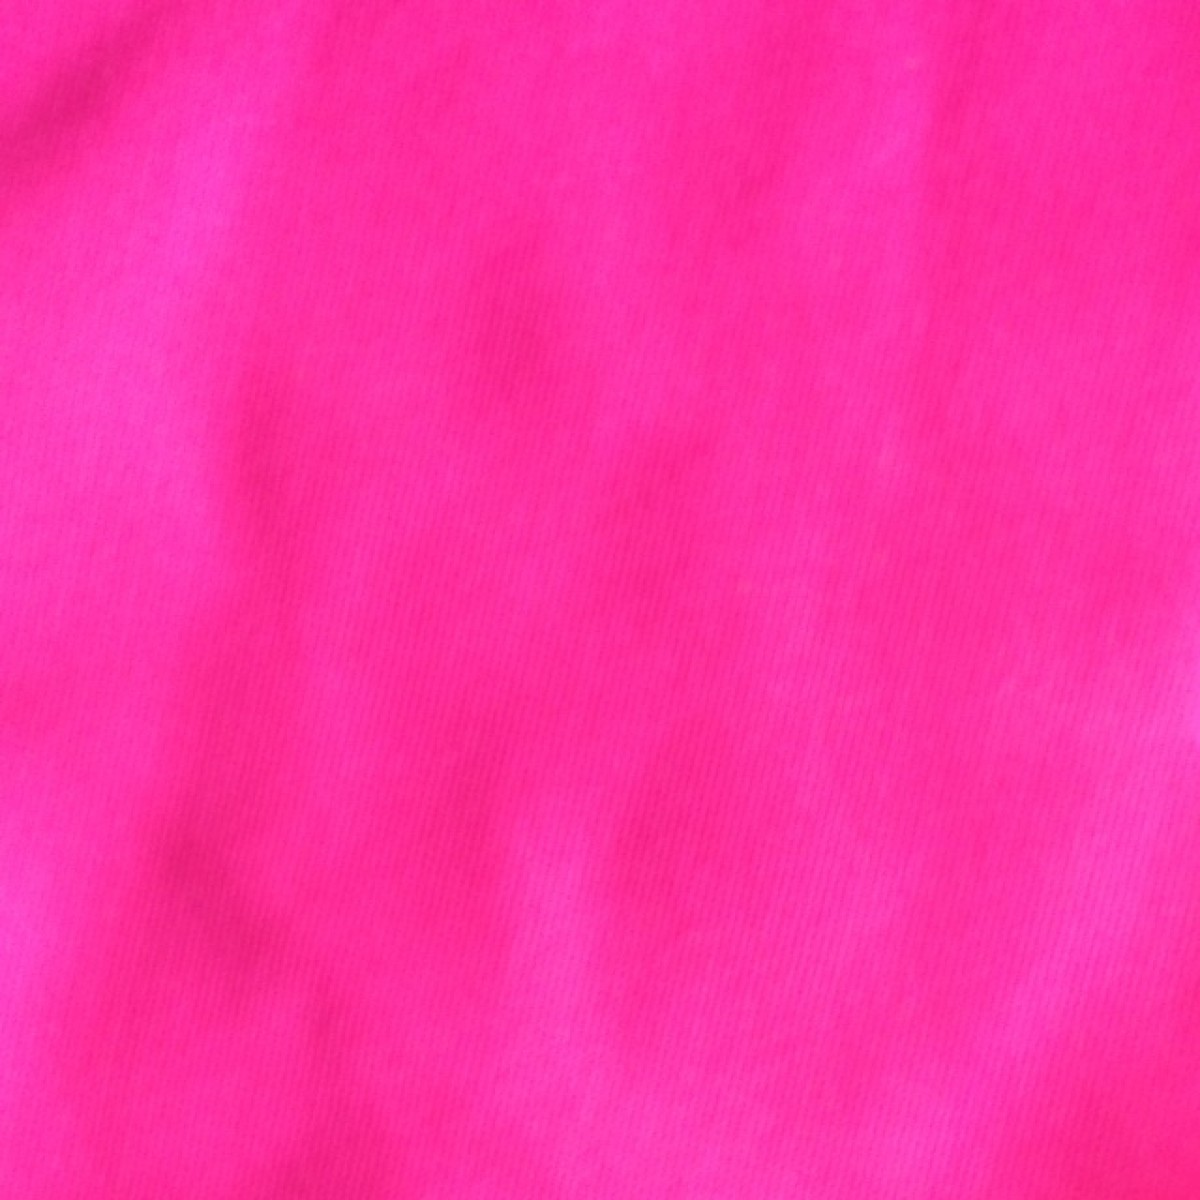 Neon Pink Background Wallpaper - WallpaperSafari